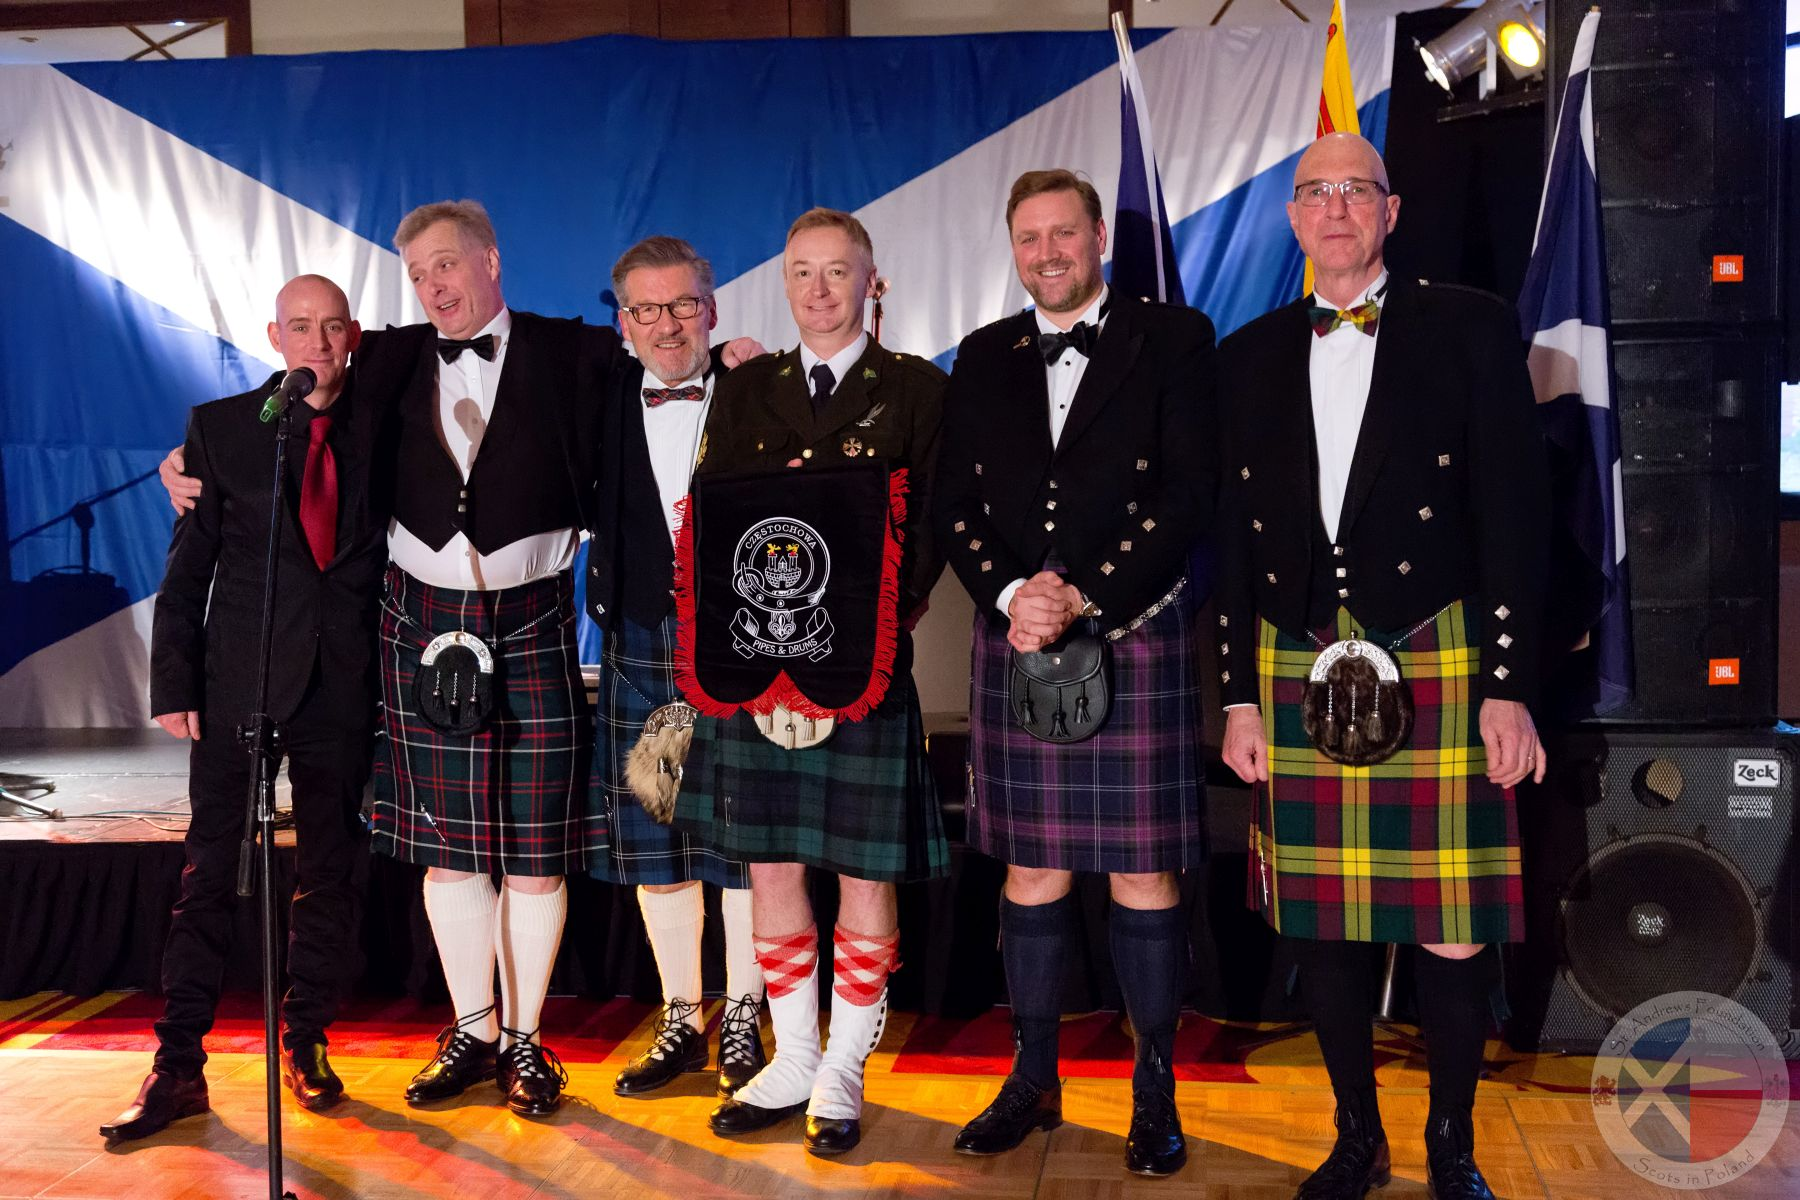 Pipe Major Tomasz Ujma (centre) with his new bagpipe pennant.